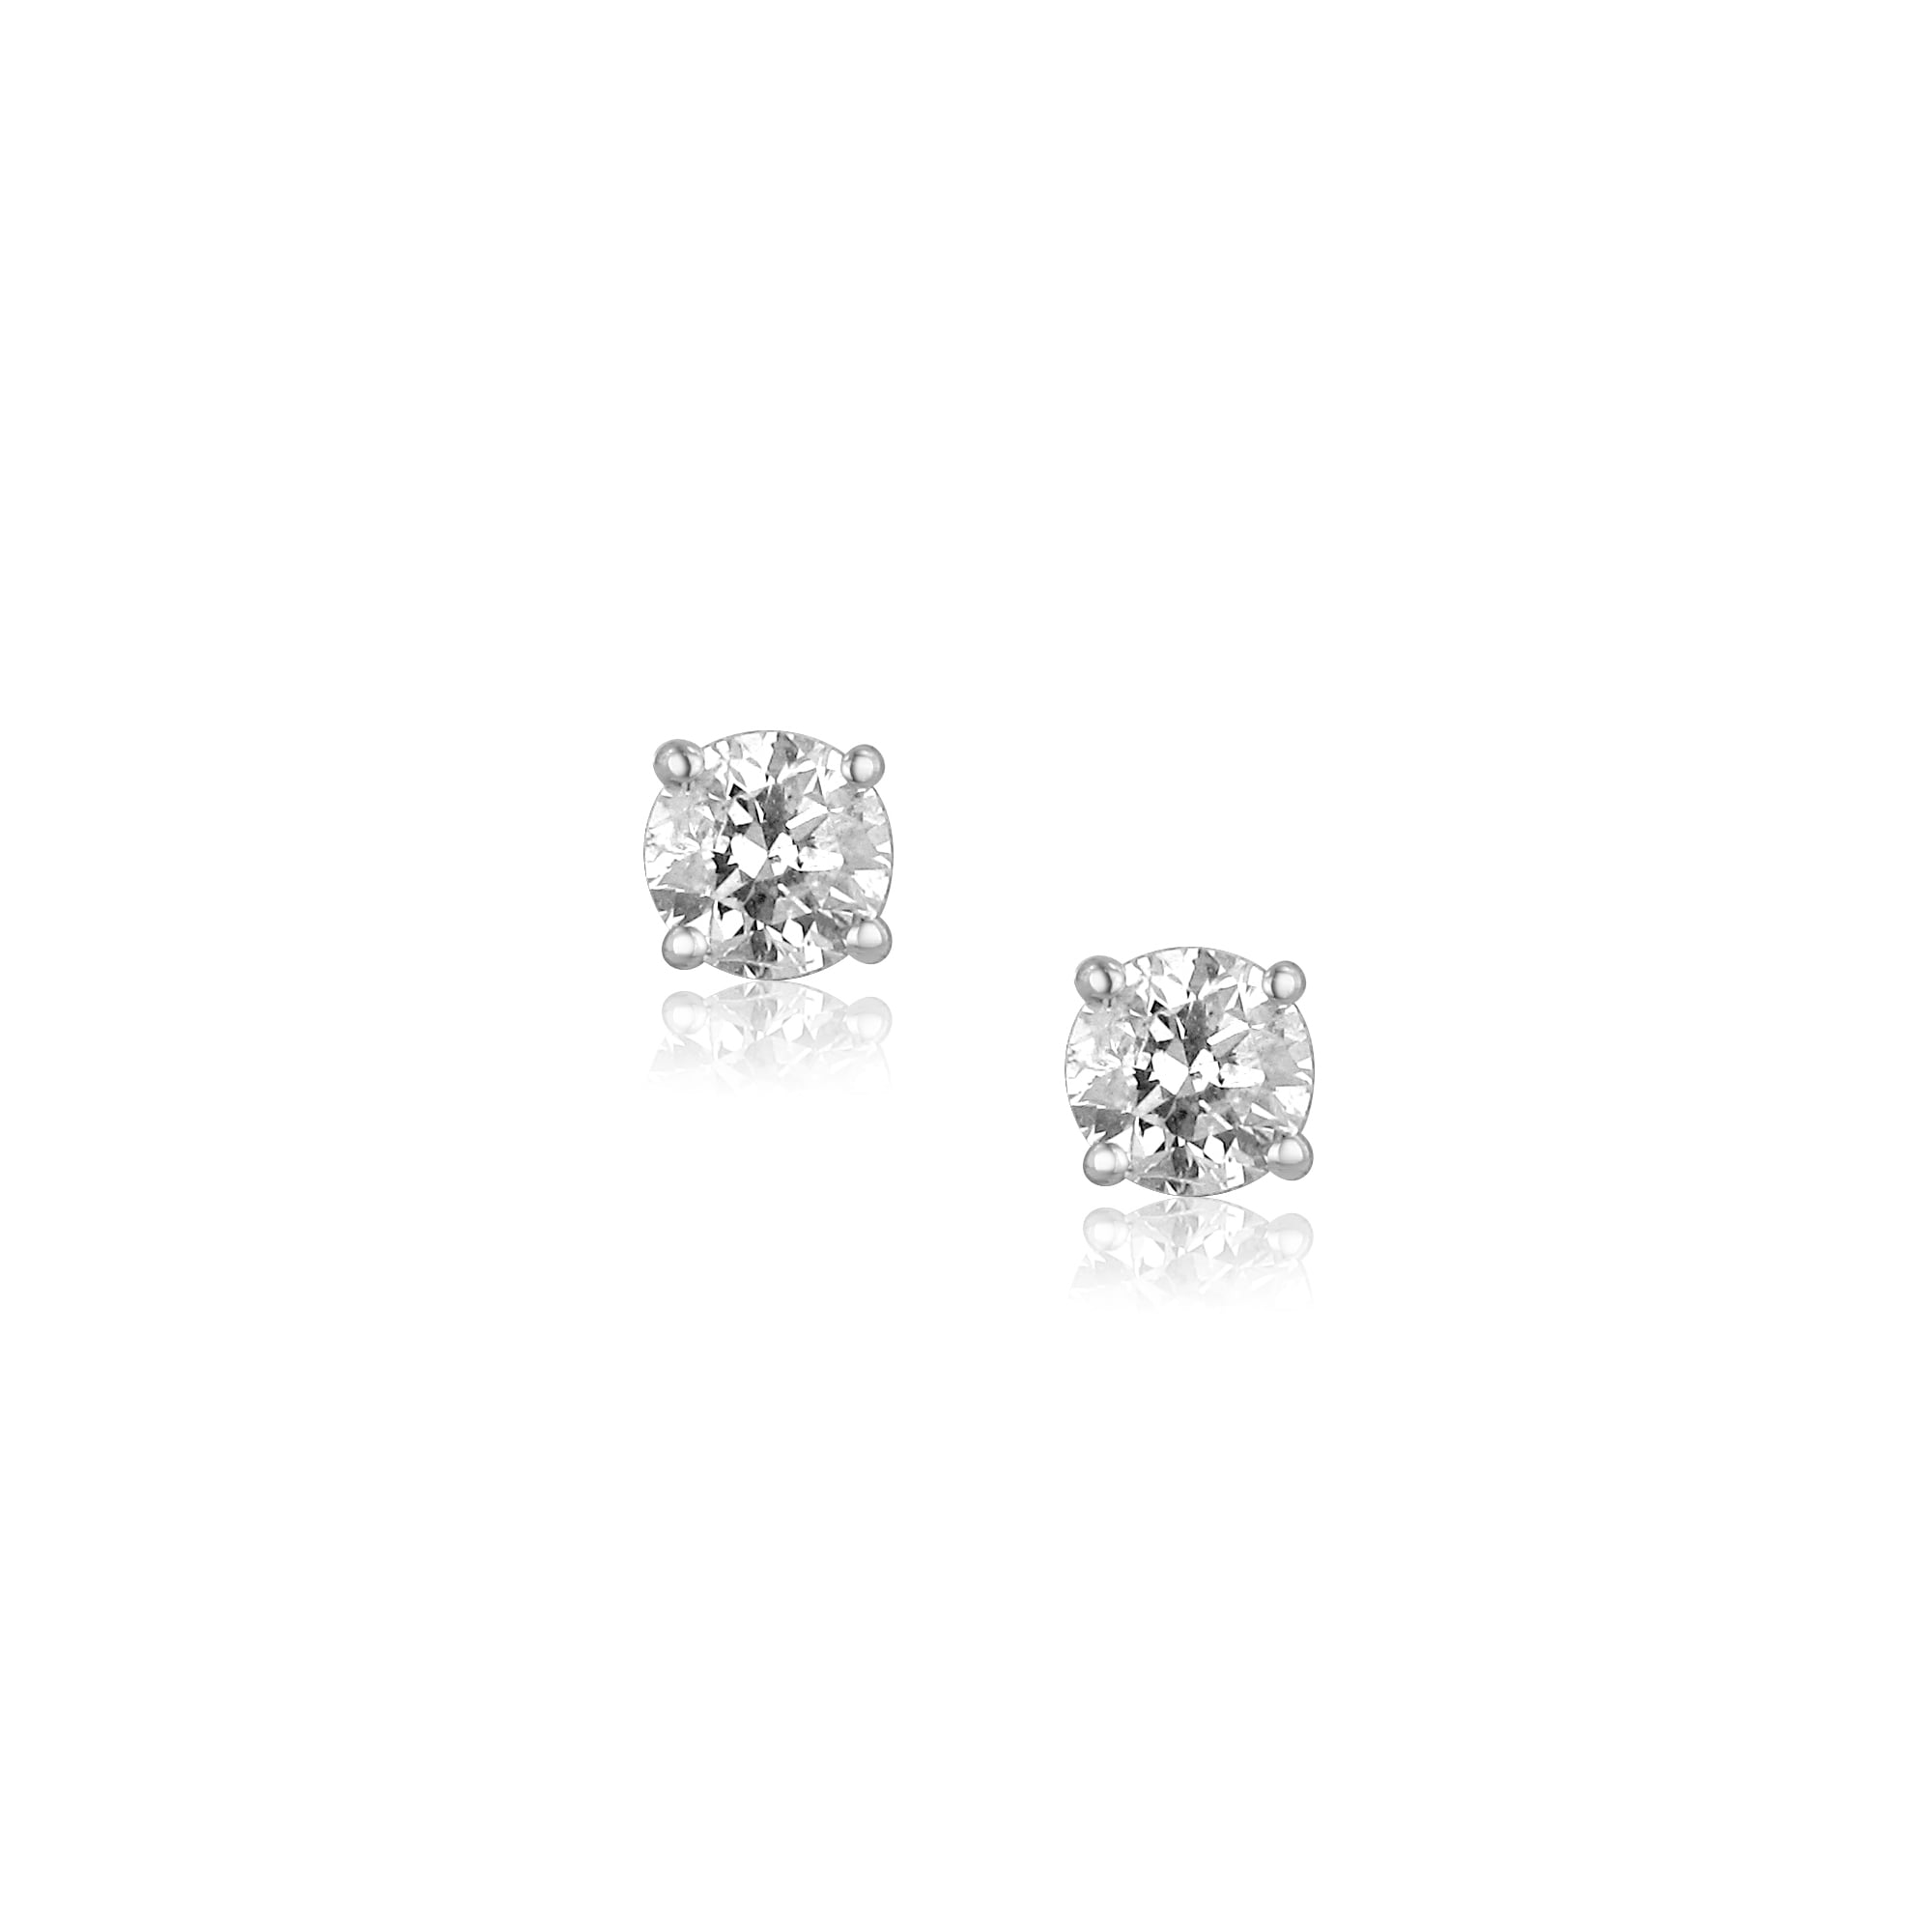 cttw in jewels gold jewellery earrings products igi stud certified diamond vir white earring